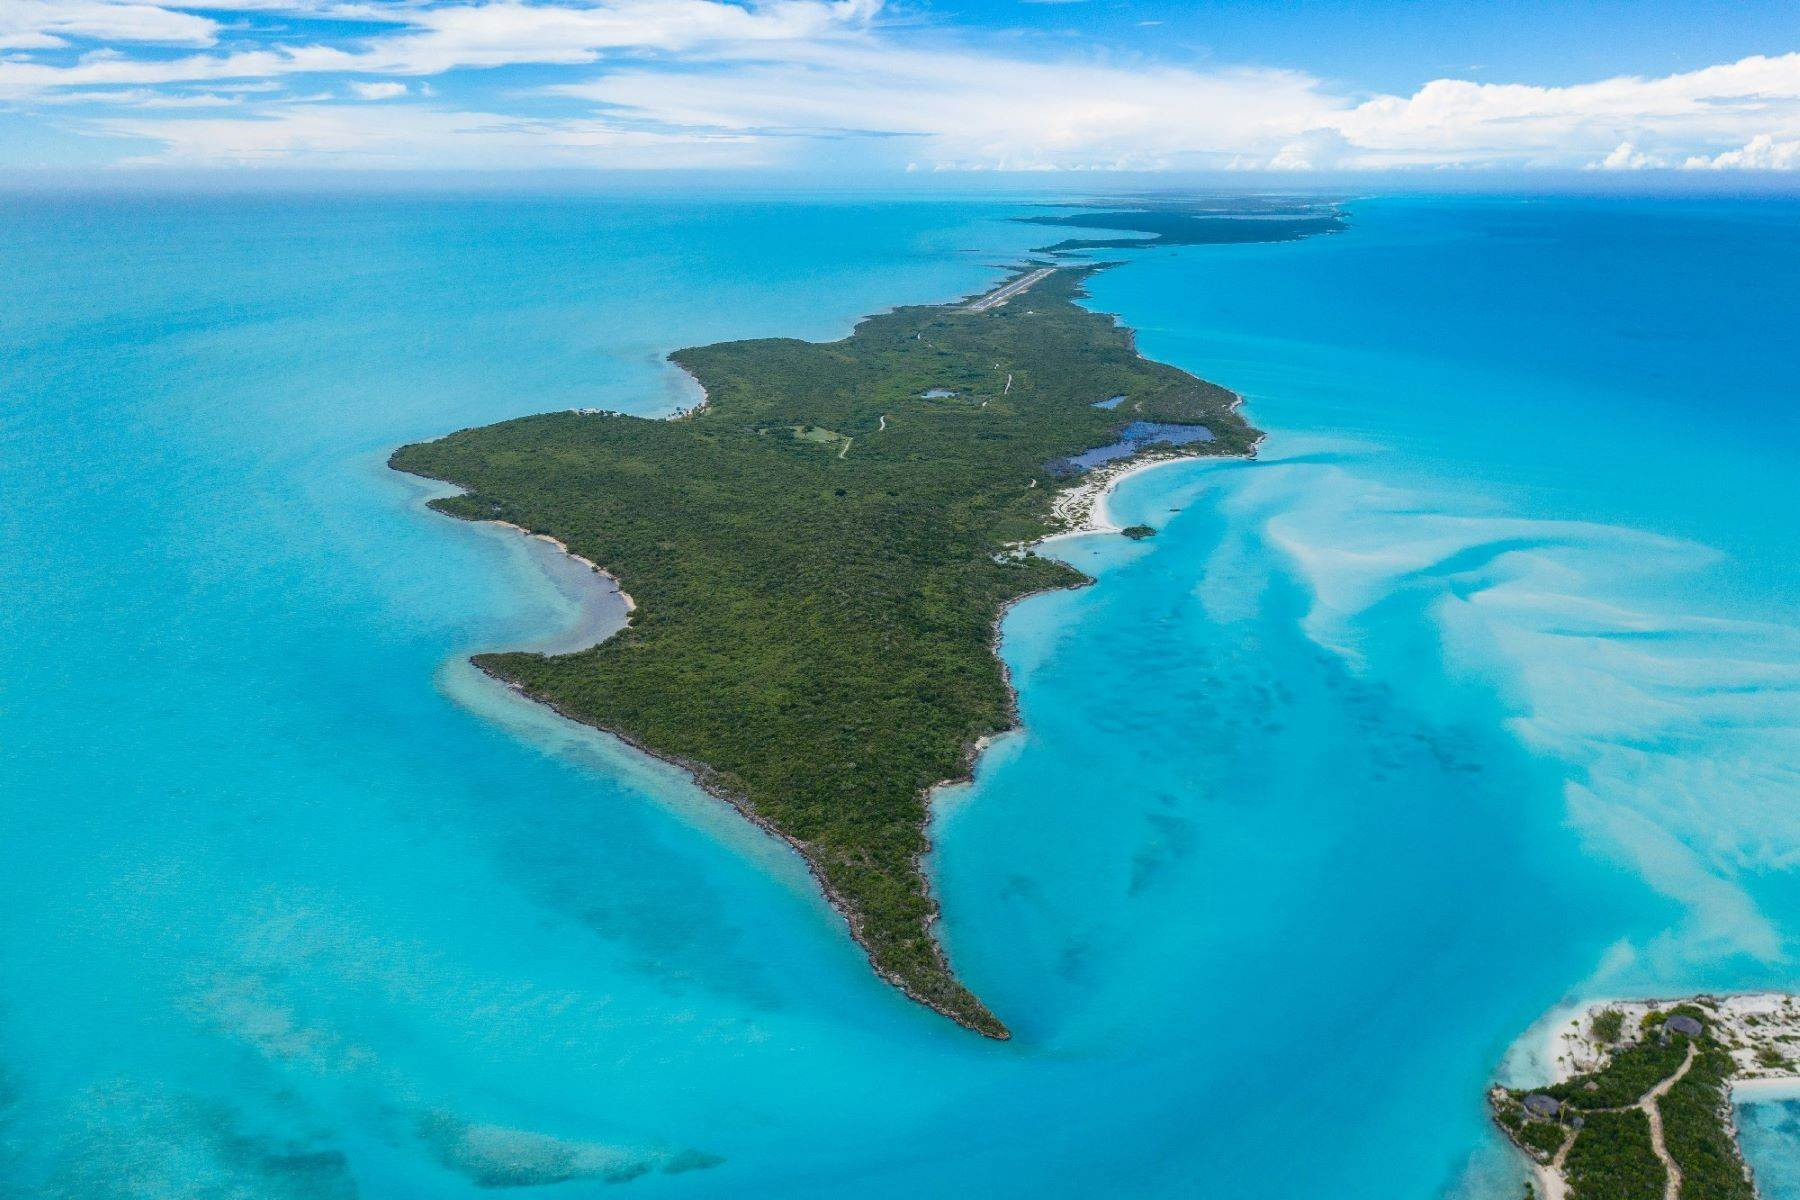 12. Private Islands for Sale at Exuma Cays, Exuma Bahamas